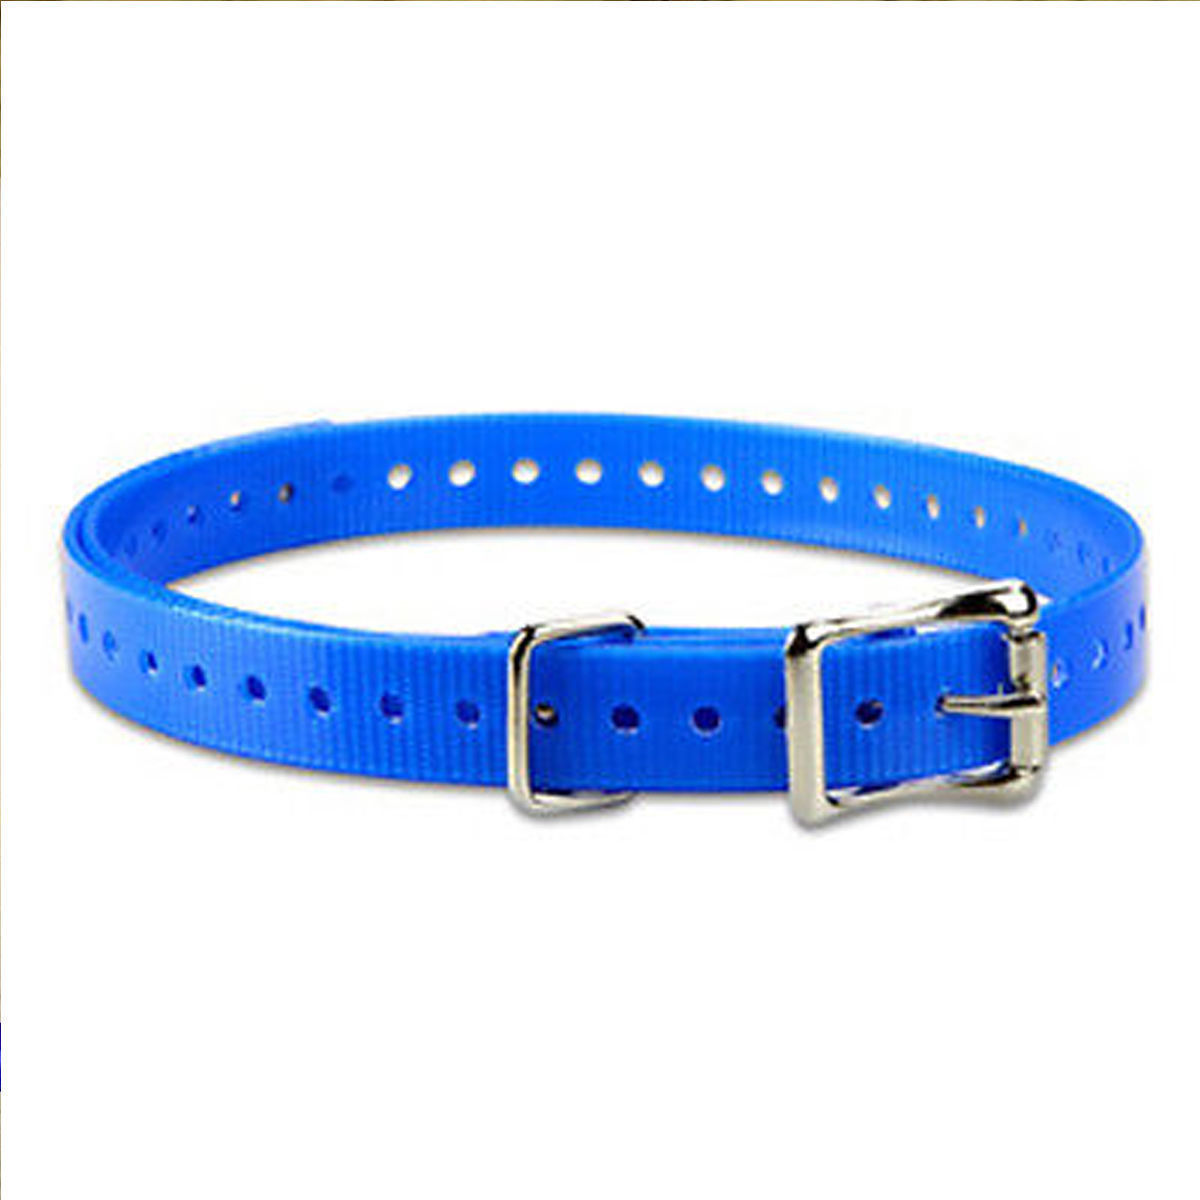 "SPORT DOG REPLACEMENT 1"" COLLAR STRAP black or blue"